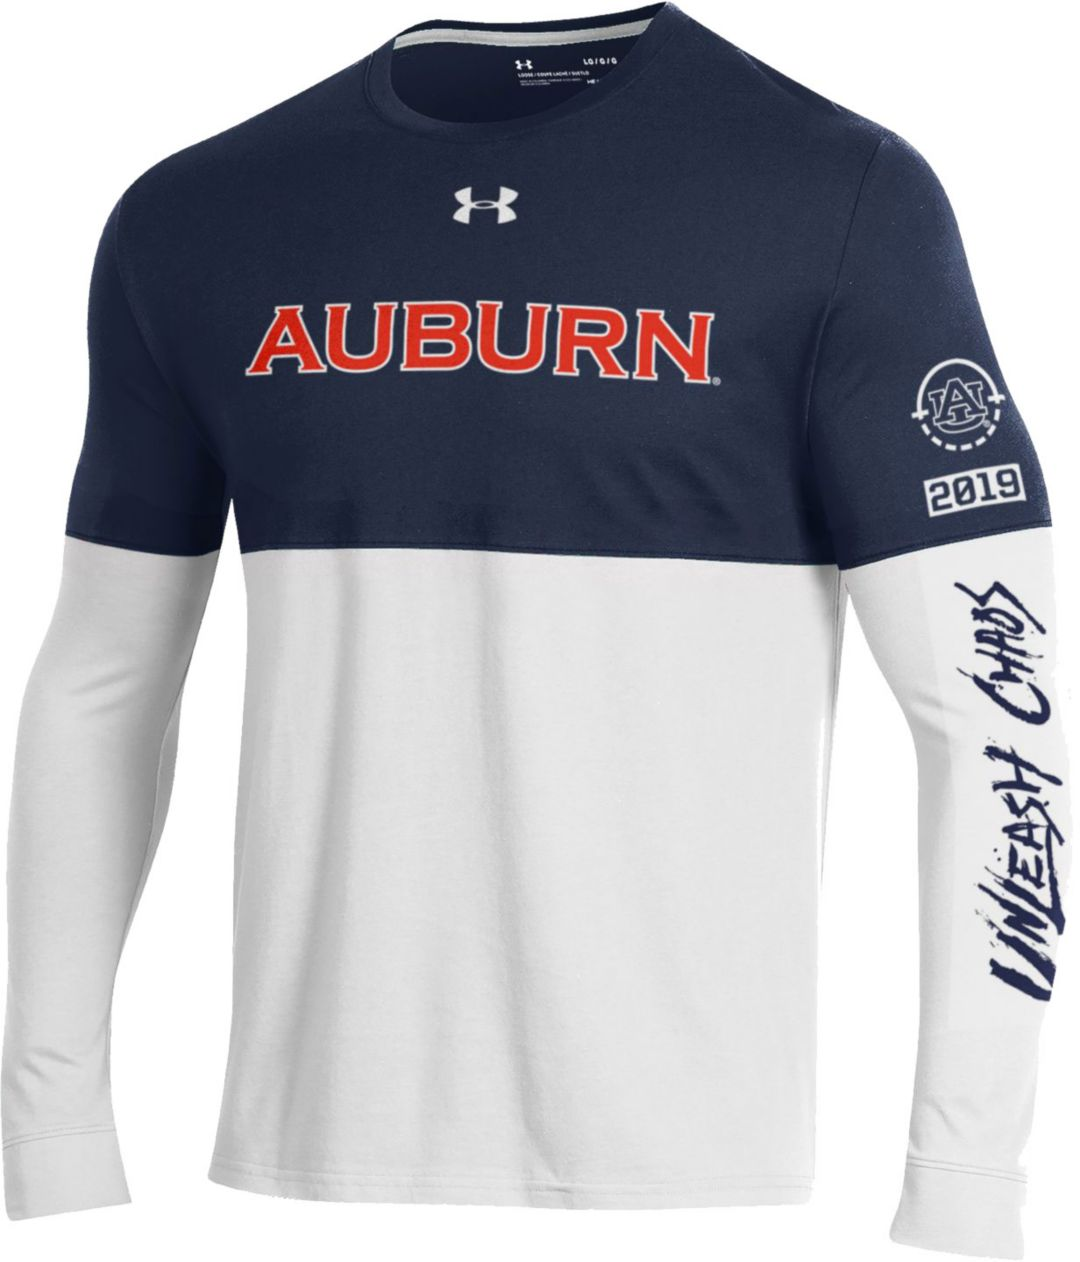 0f195bd94 Under Armour Men's Auburn Tigers Blue/White 'Unleash Chaos' Bench ...